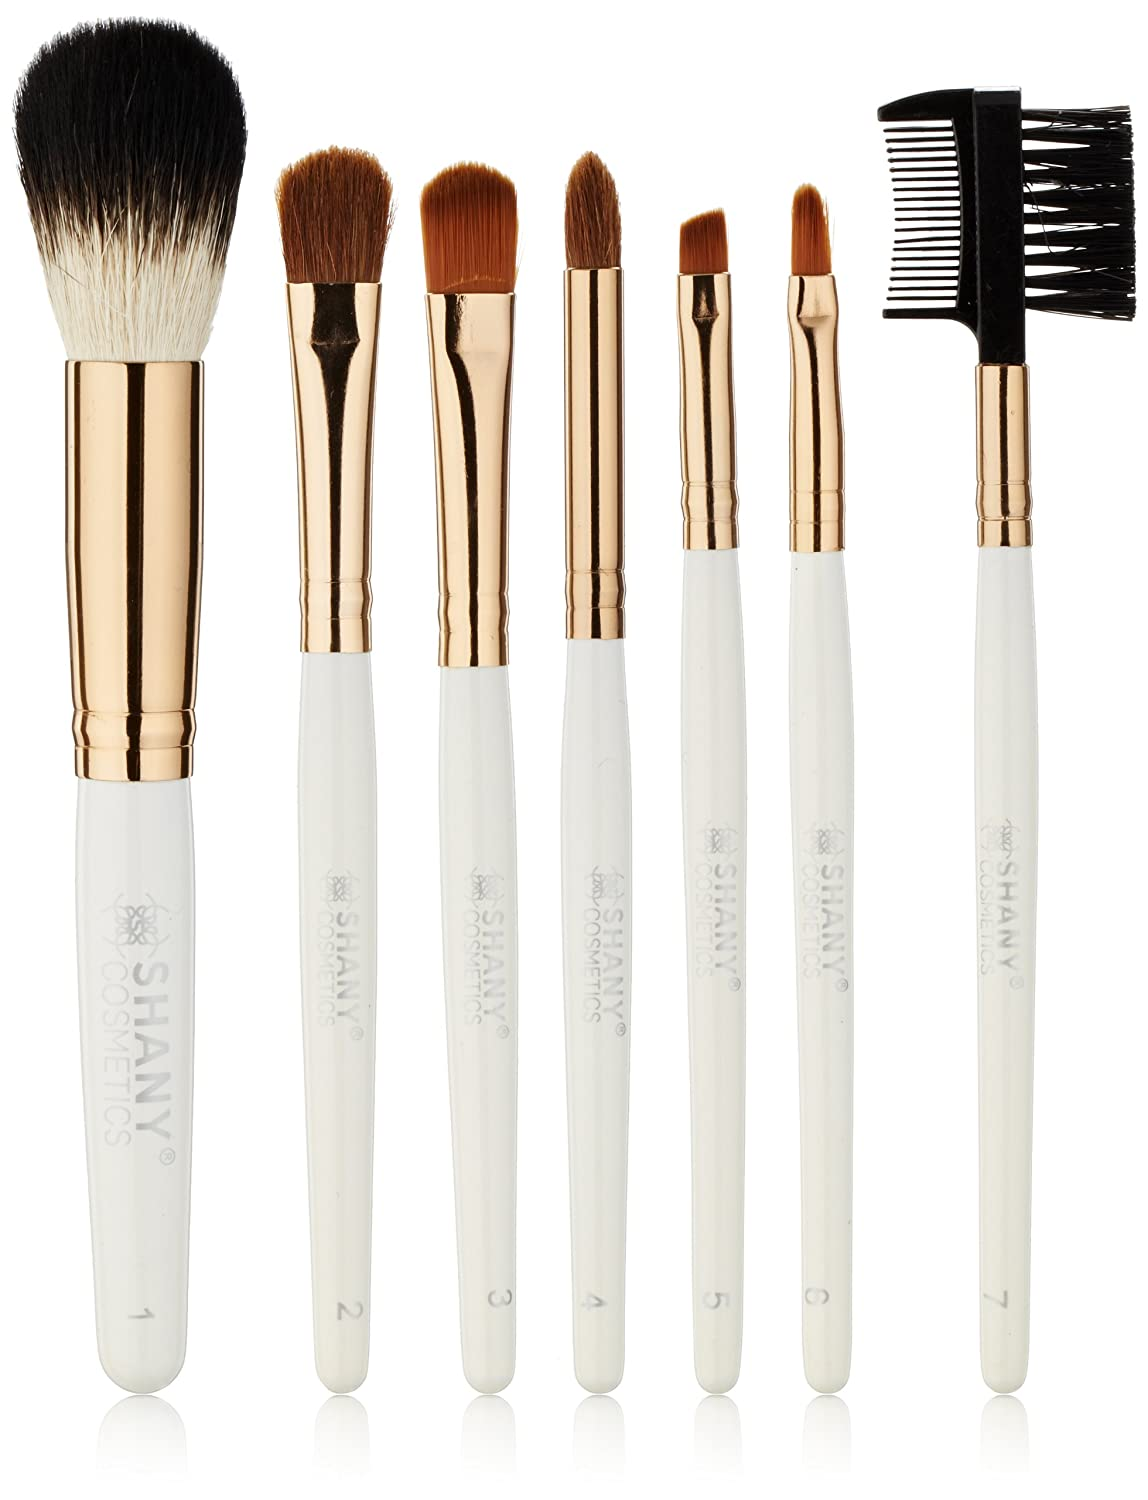 SHANY Studio Quality Natural Cosmetic Brush Set with Leather Pouch, 24 Count SHANY Cosmetics SH0024-BR